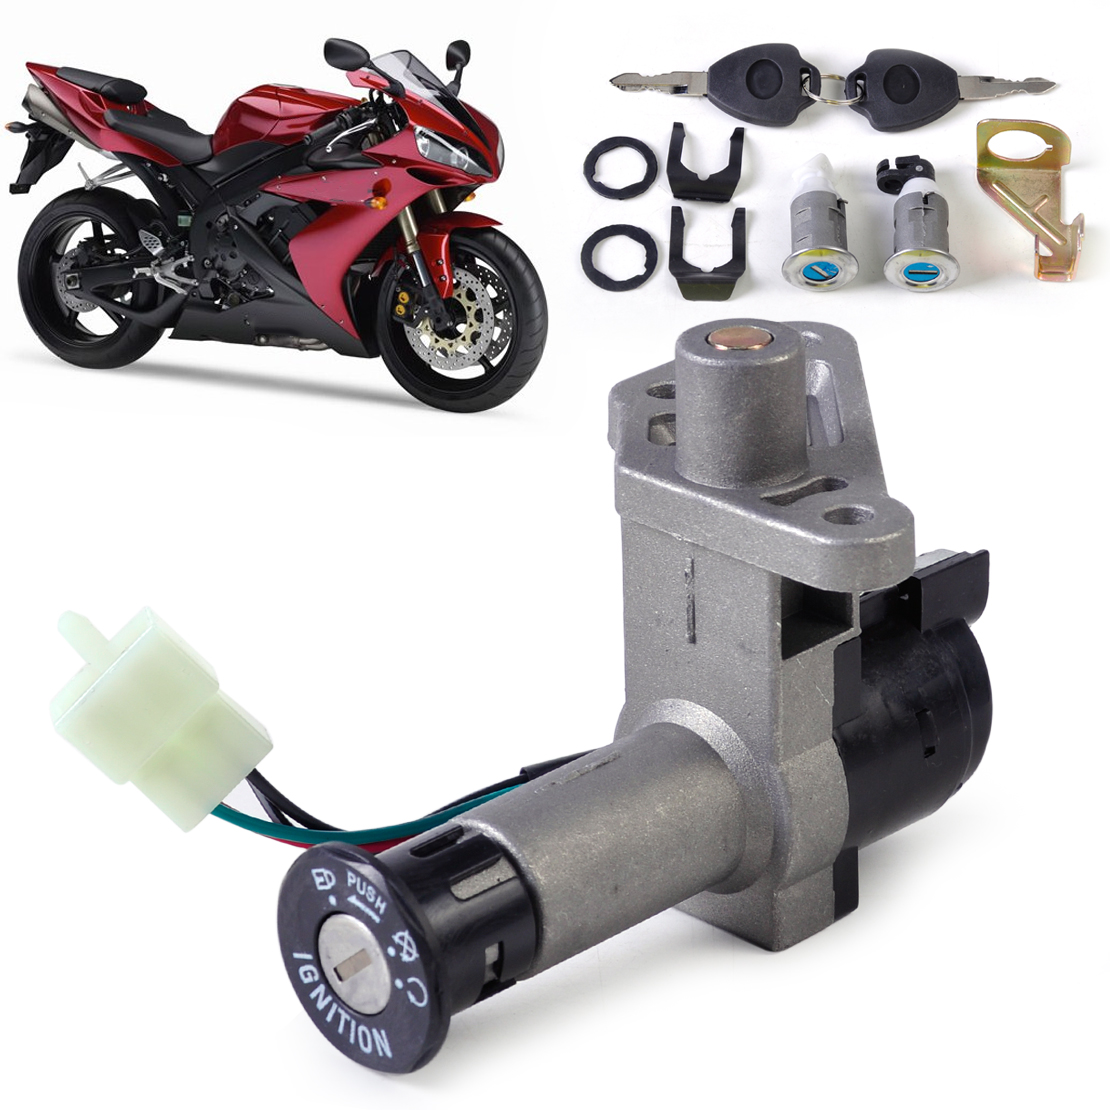 Moped Scooter Ignition Key Switch Lock Toolbox Cushion Lock fit for 50-150cc GY6 TaoTao Buyang Roketa Chinese Part 4 Wire 4Pin